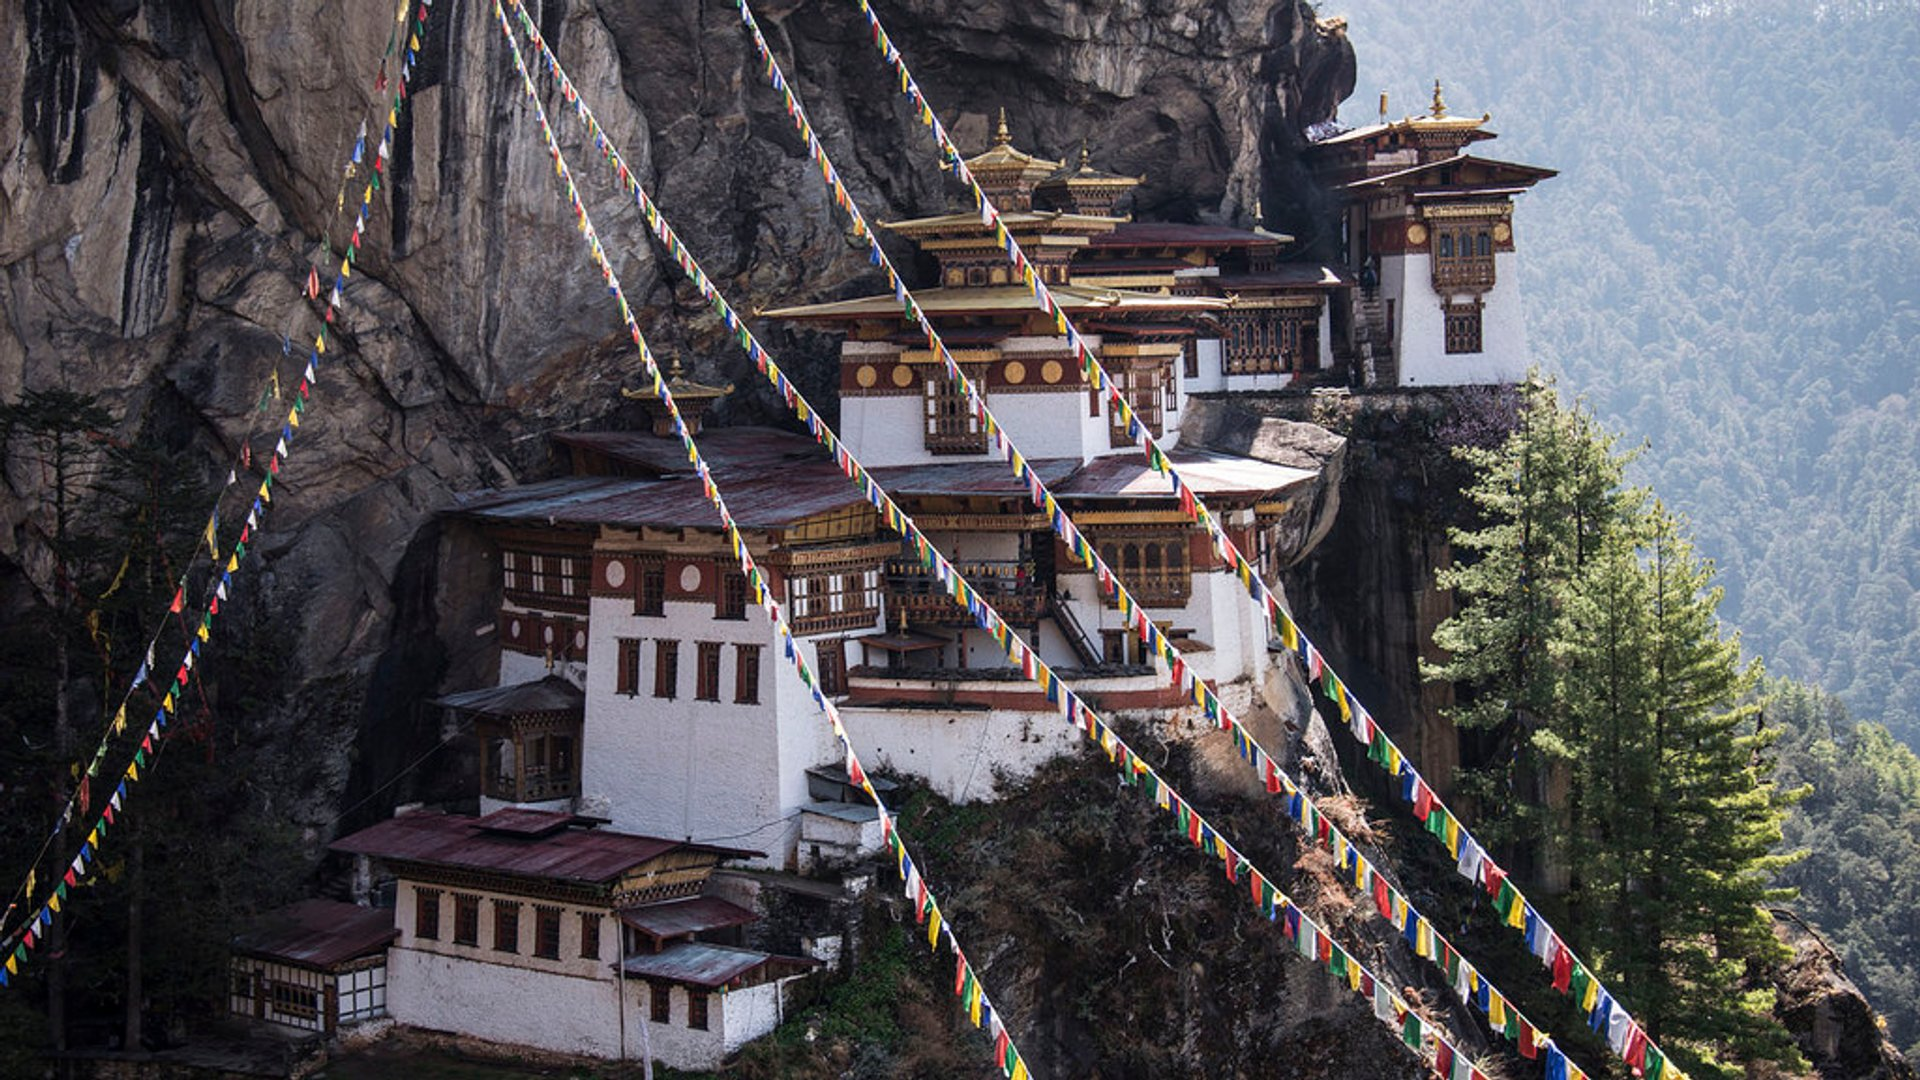 Tiger's Nest (Paro Taktsang) in Bhutan - Best Season 2020